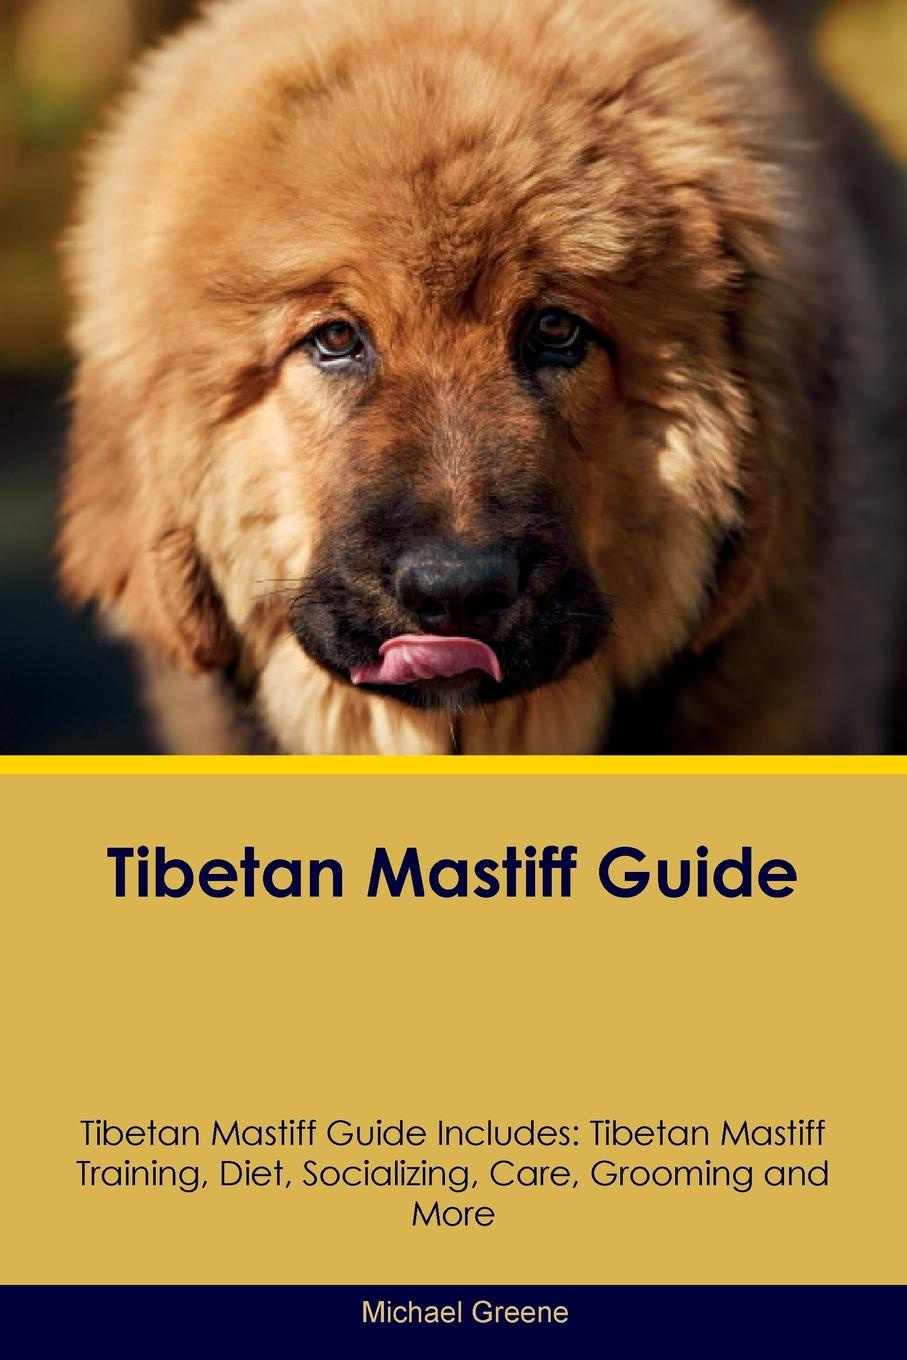 Michael Greene Tibetan Mastiff Guide Includes. Training, Diet, Socializing, Care, Grooming, Breeding and More